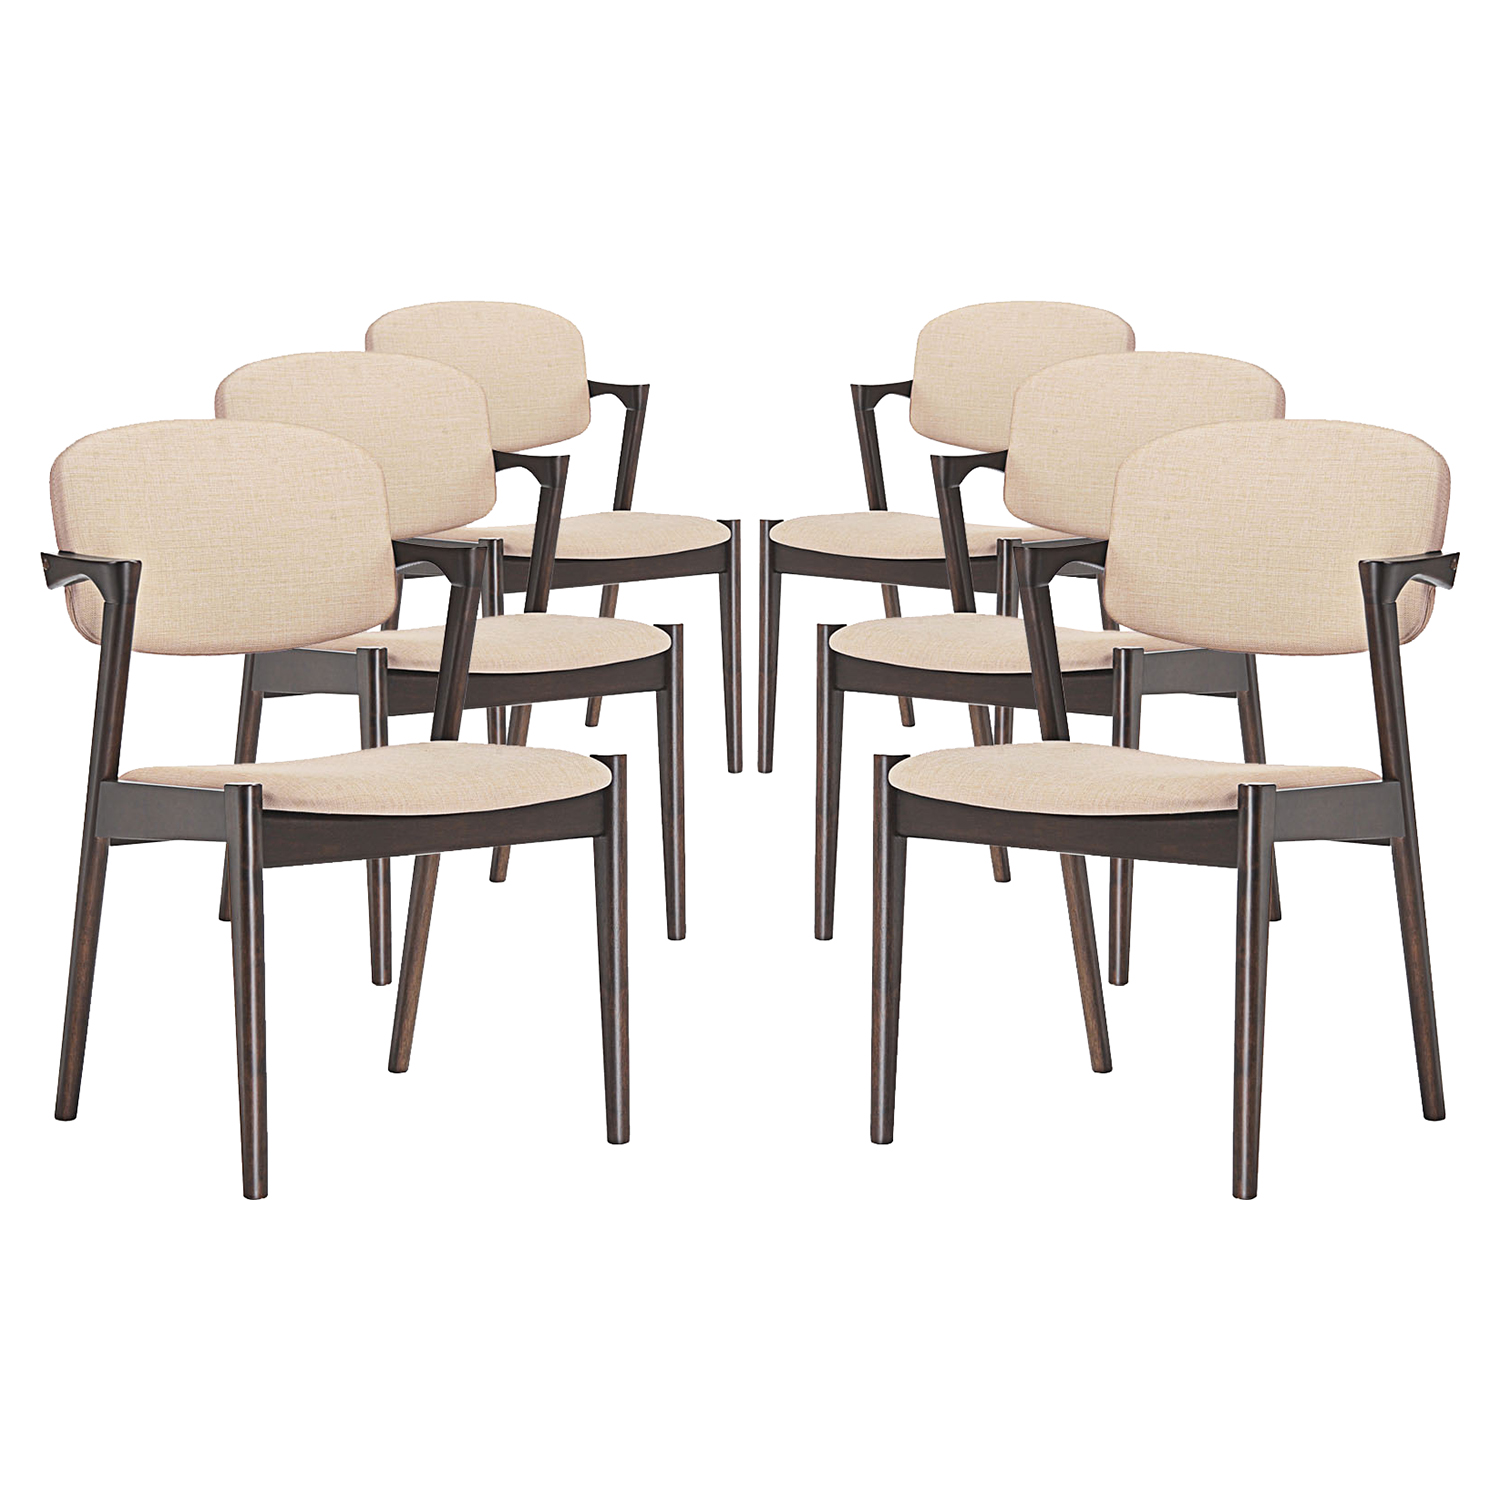 Spunk Dining Armchair - Wood Frame, Upholstery (Set of 6) - EEI-1999-WAL-SET